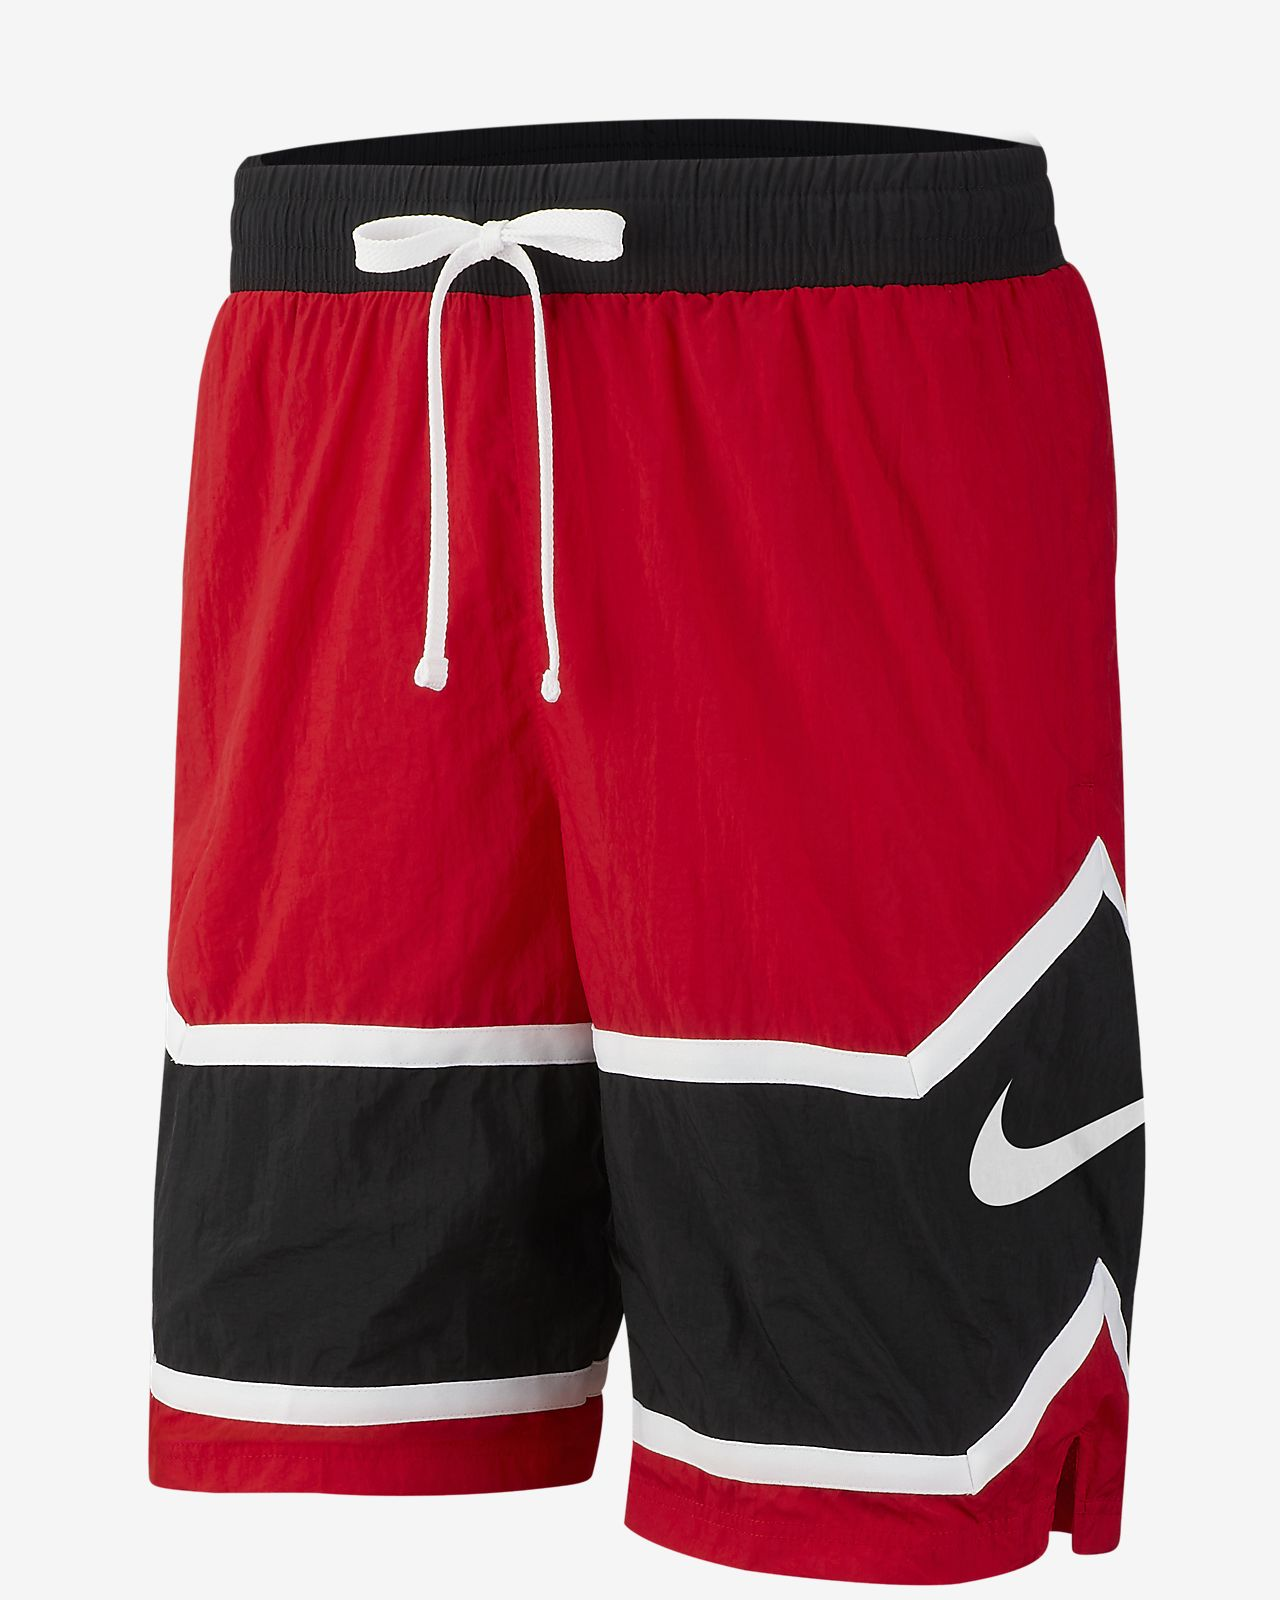 4dac92b485bbb Low Resolution Nike Throwback Men s Basketball Shorts Nike Throwback Men s  Basketball Shorts